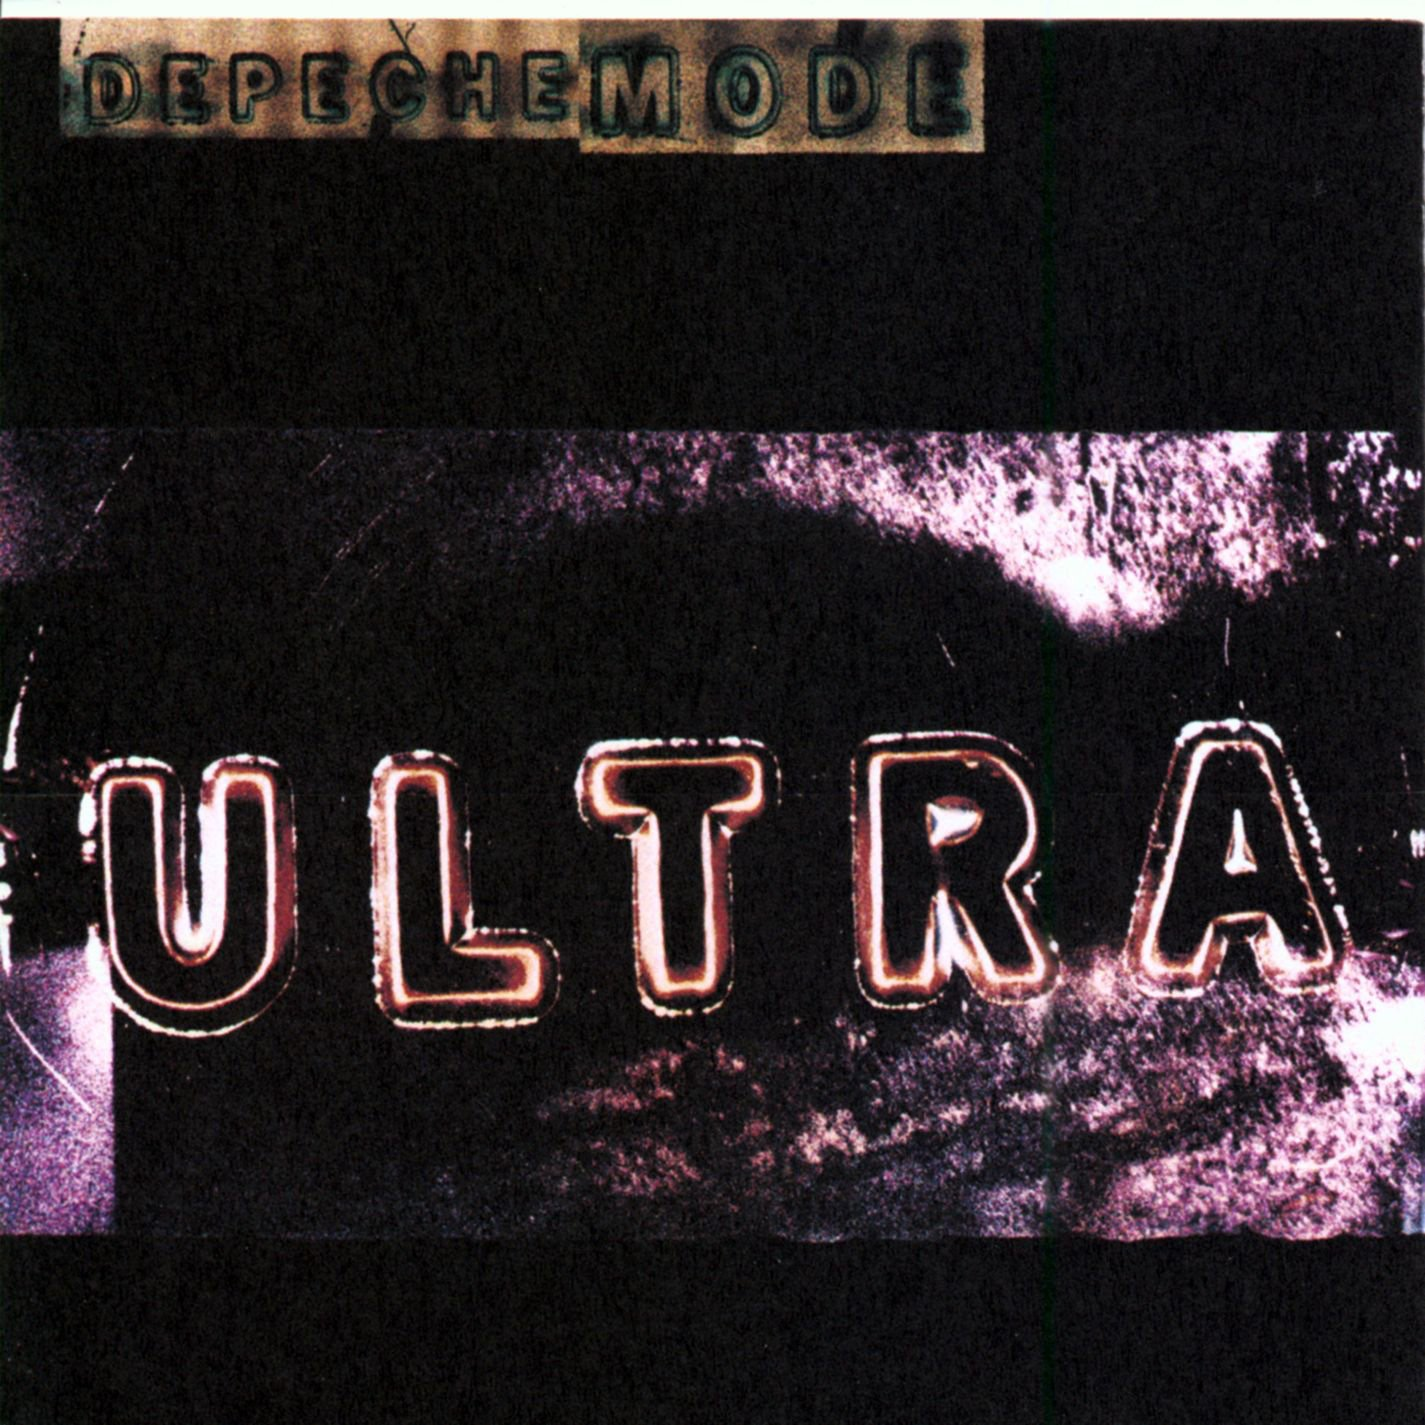 Depeche Mode Ultra album 1997 cover